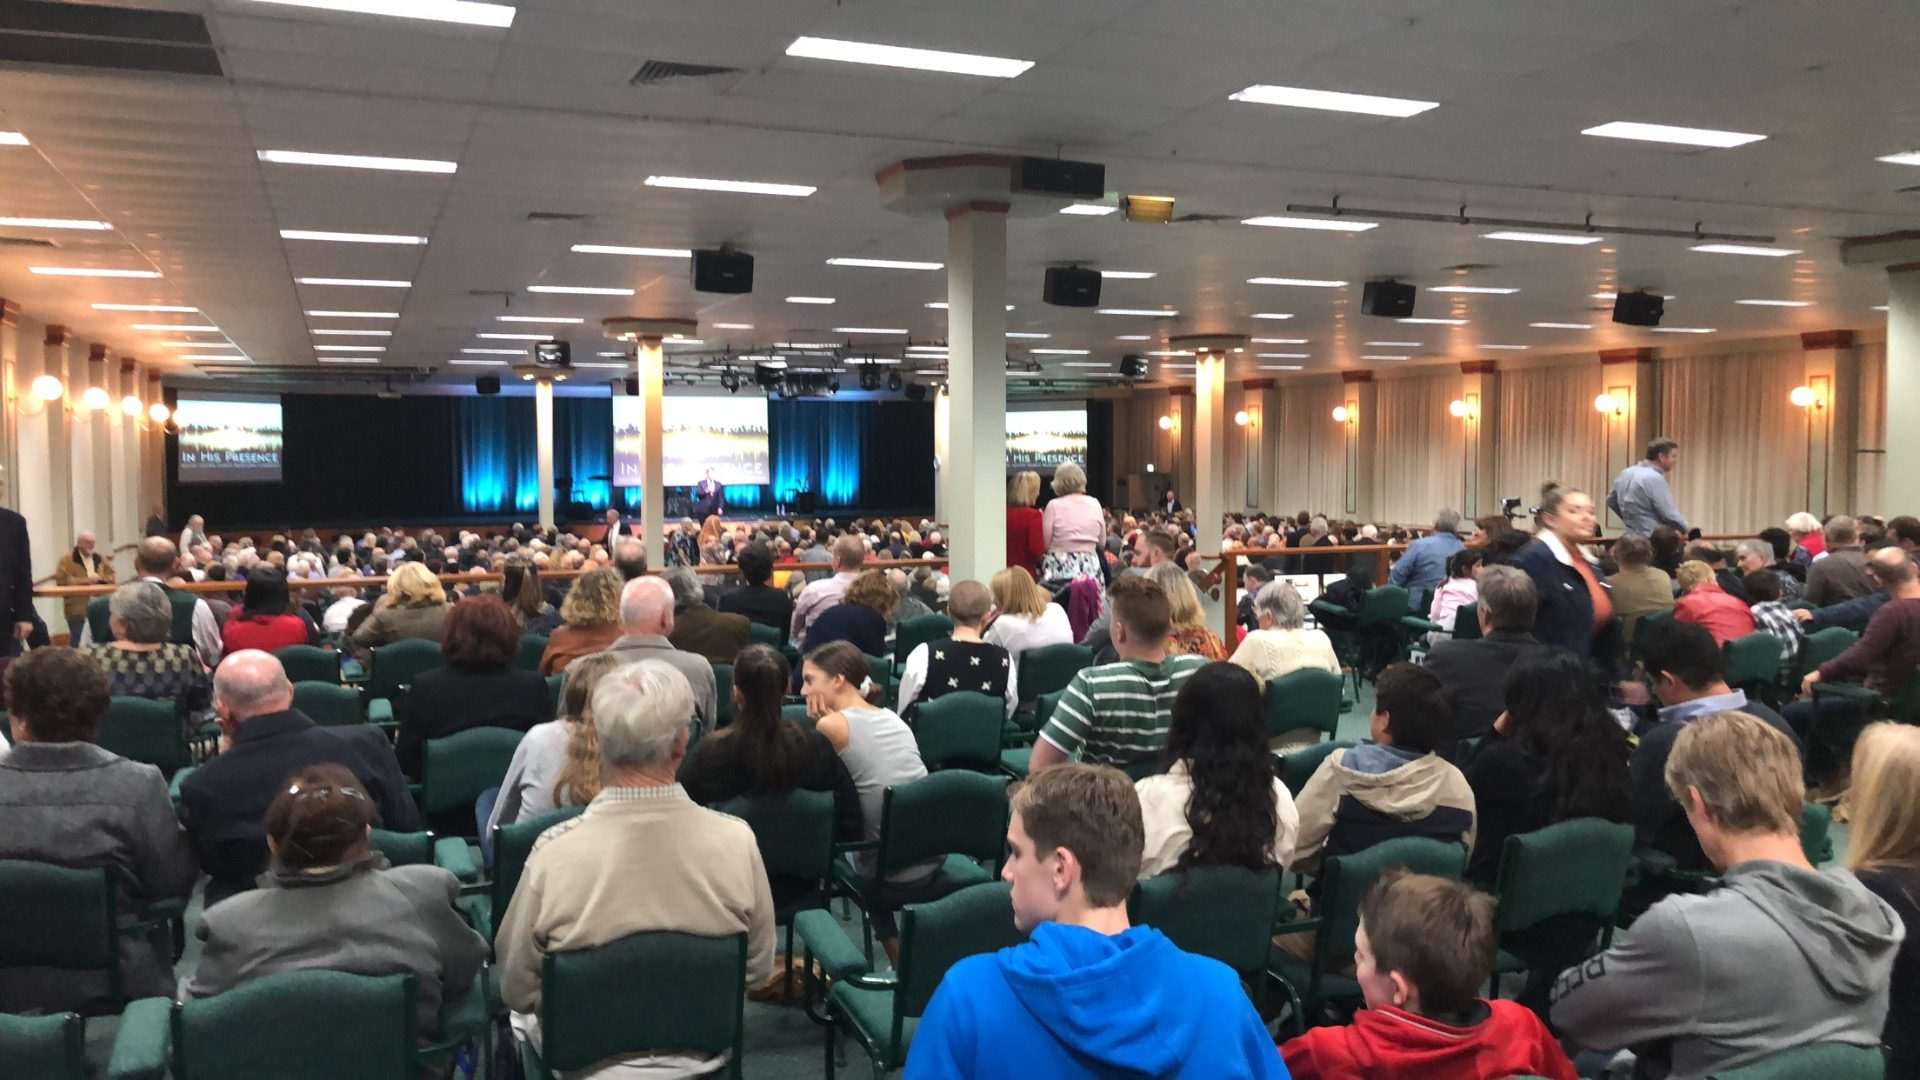 Melbourne Convention 'In His Presence'